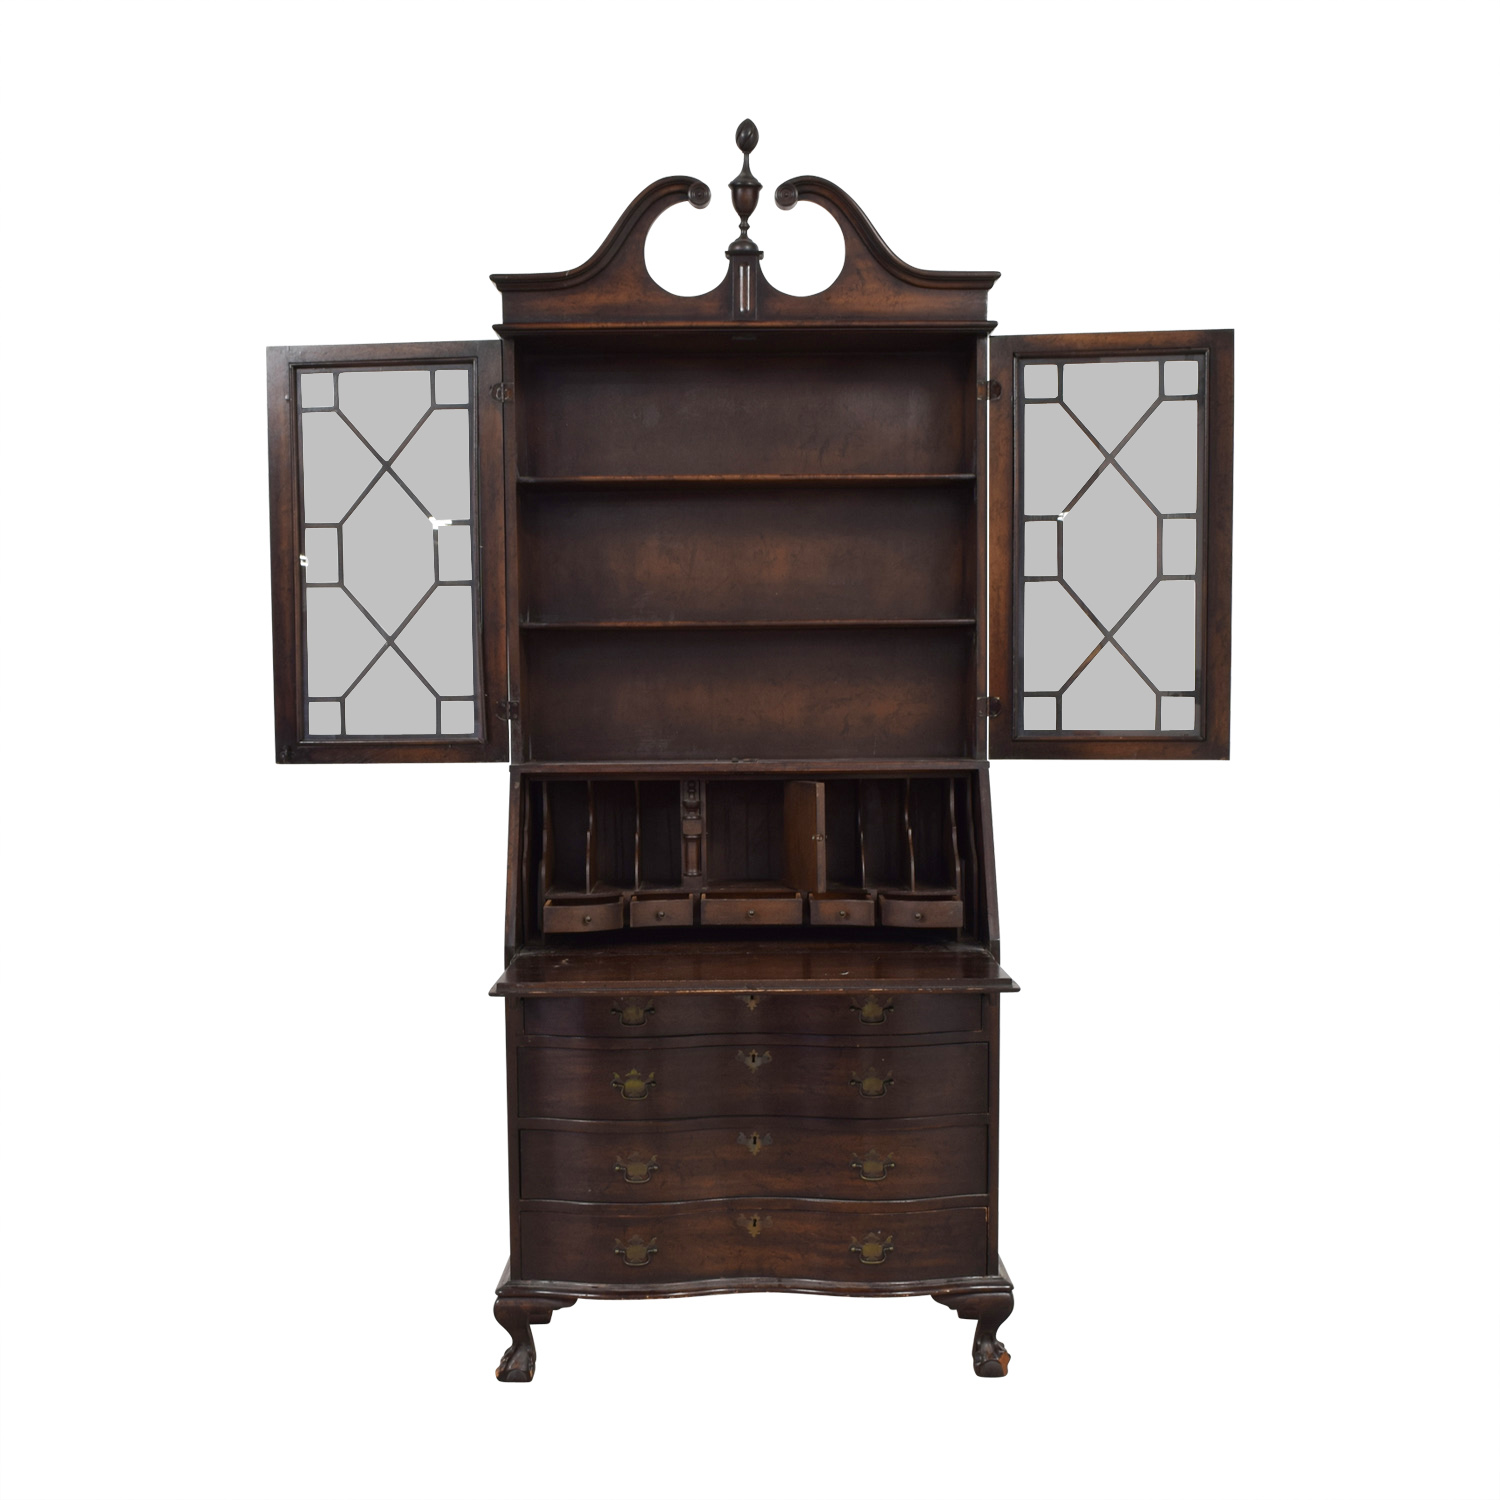 Antique Wood and Glass Secretary Desk Storage